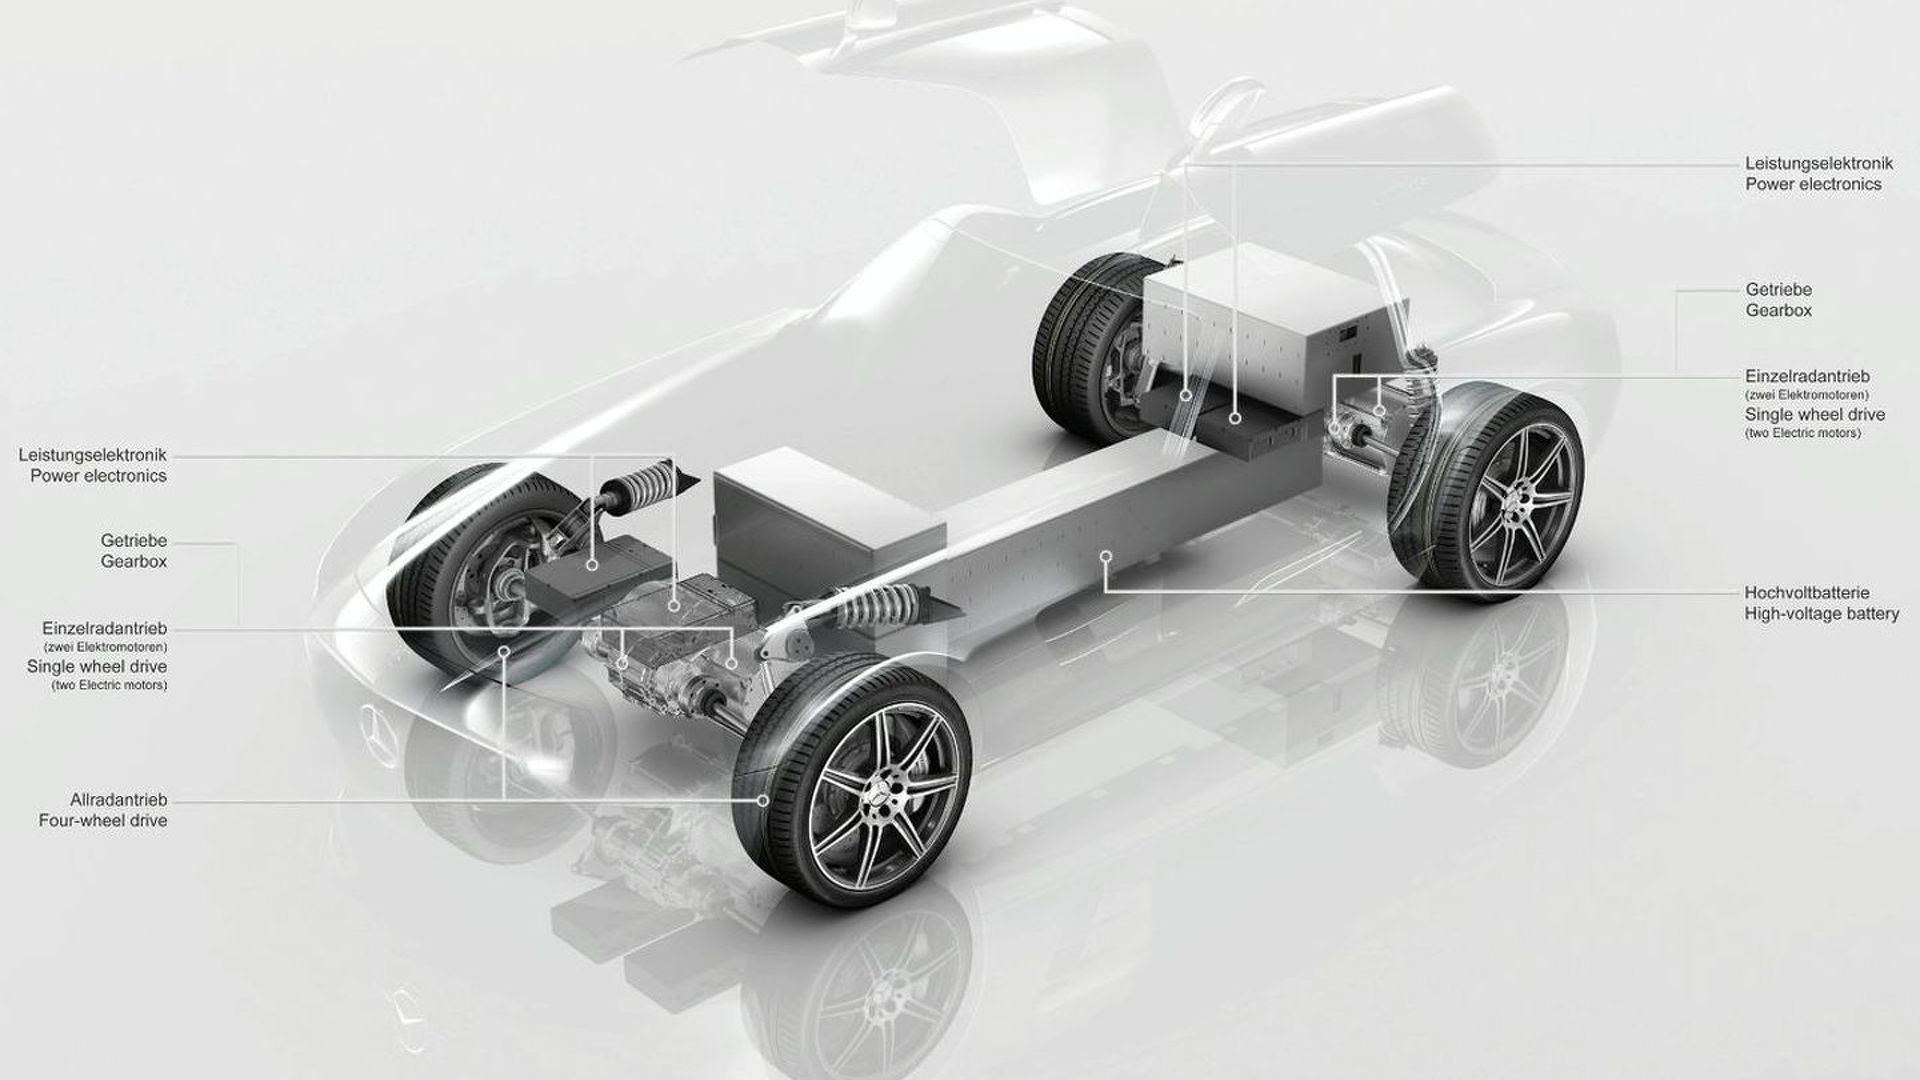 Electric motor blueprints impremedia mercedes announces sls amg gullwing electric malvernweather Images